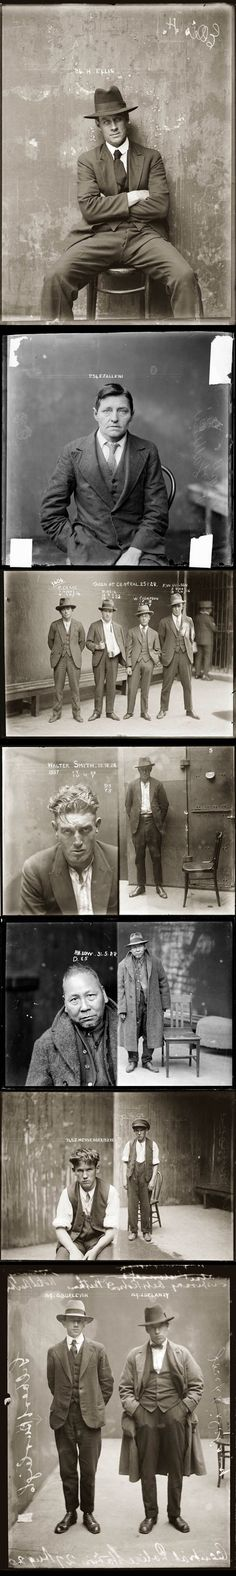 1920s weren't just mugshots but were part of photography history. Take a look at these awesome photos.